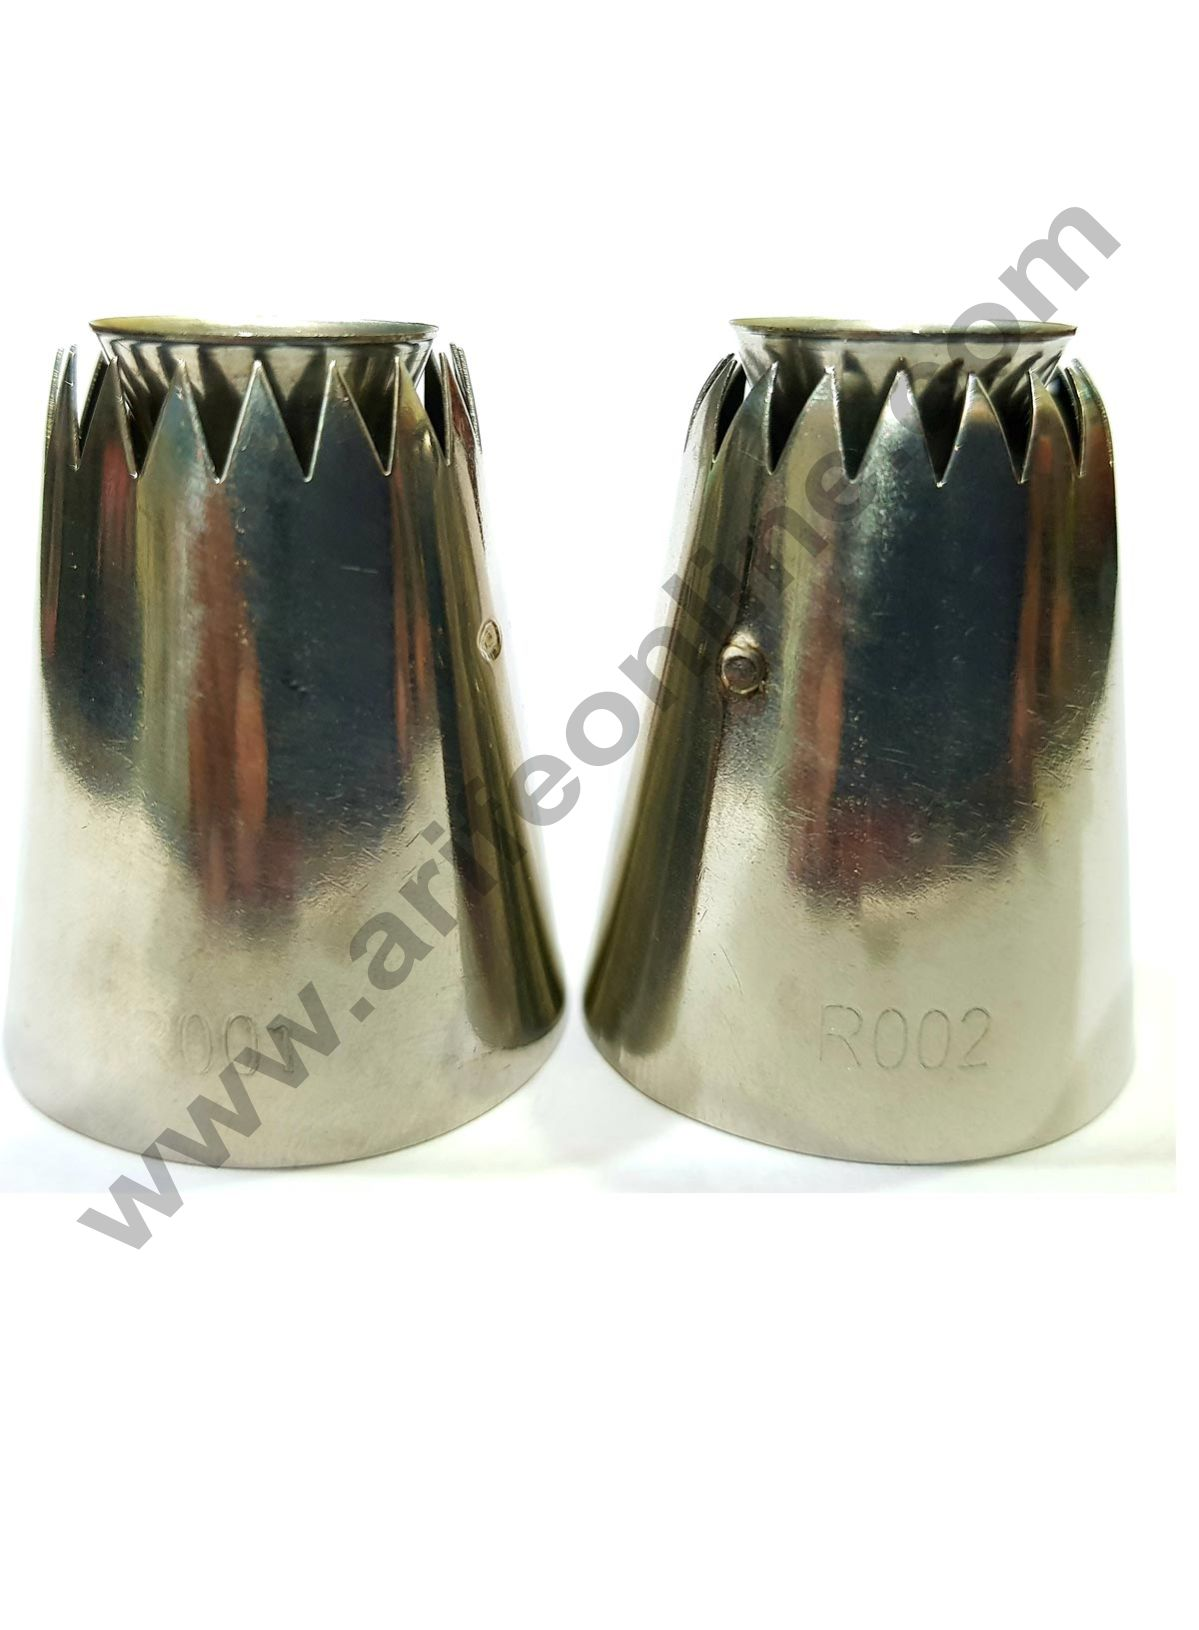 Cake Decor 2 Pcs Set Extra Large Sultan Premium Piping Nozzle for Sultane Style,No:R001,R002